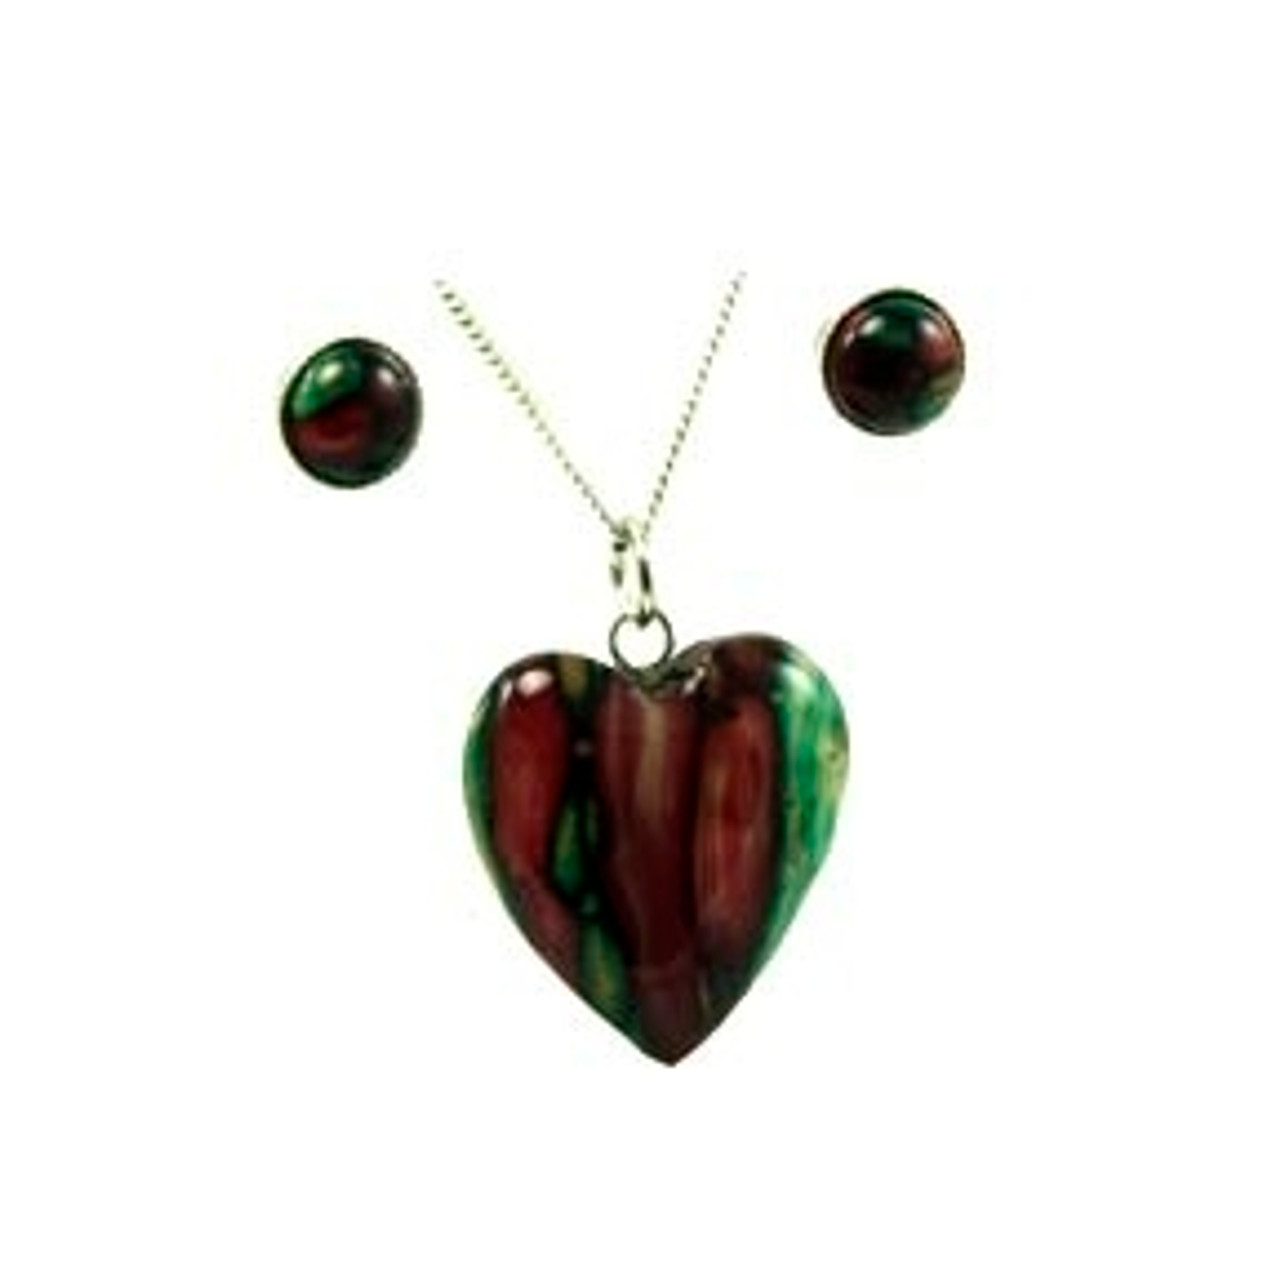 Heathergem Heart Pendant Necklace and Earring Set